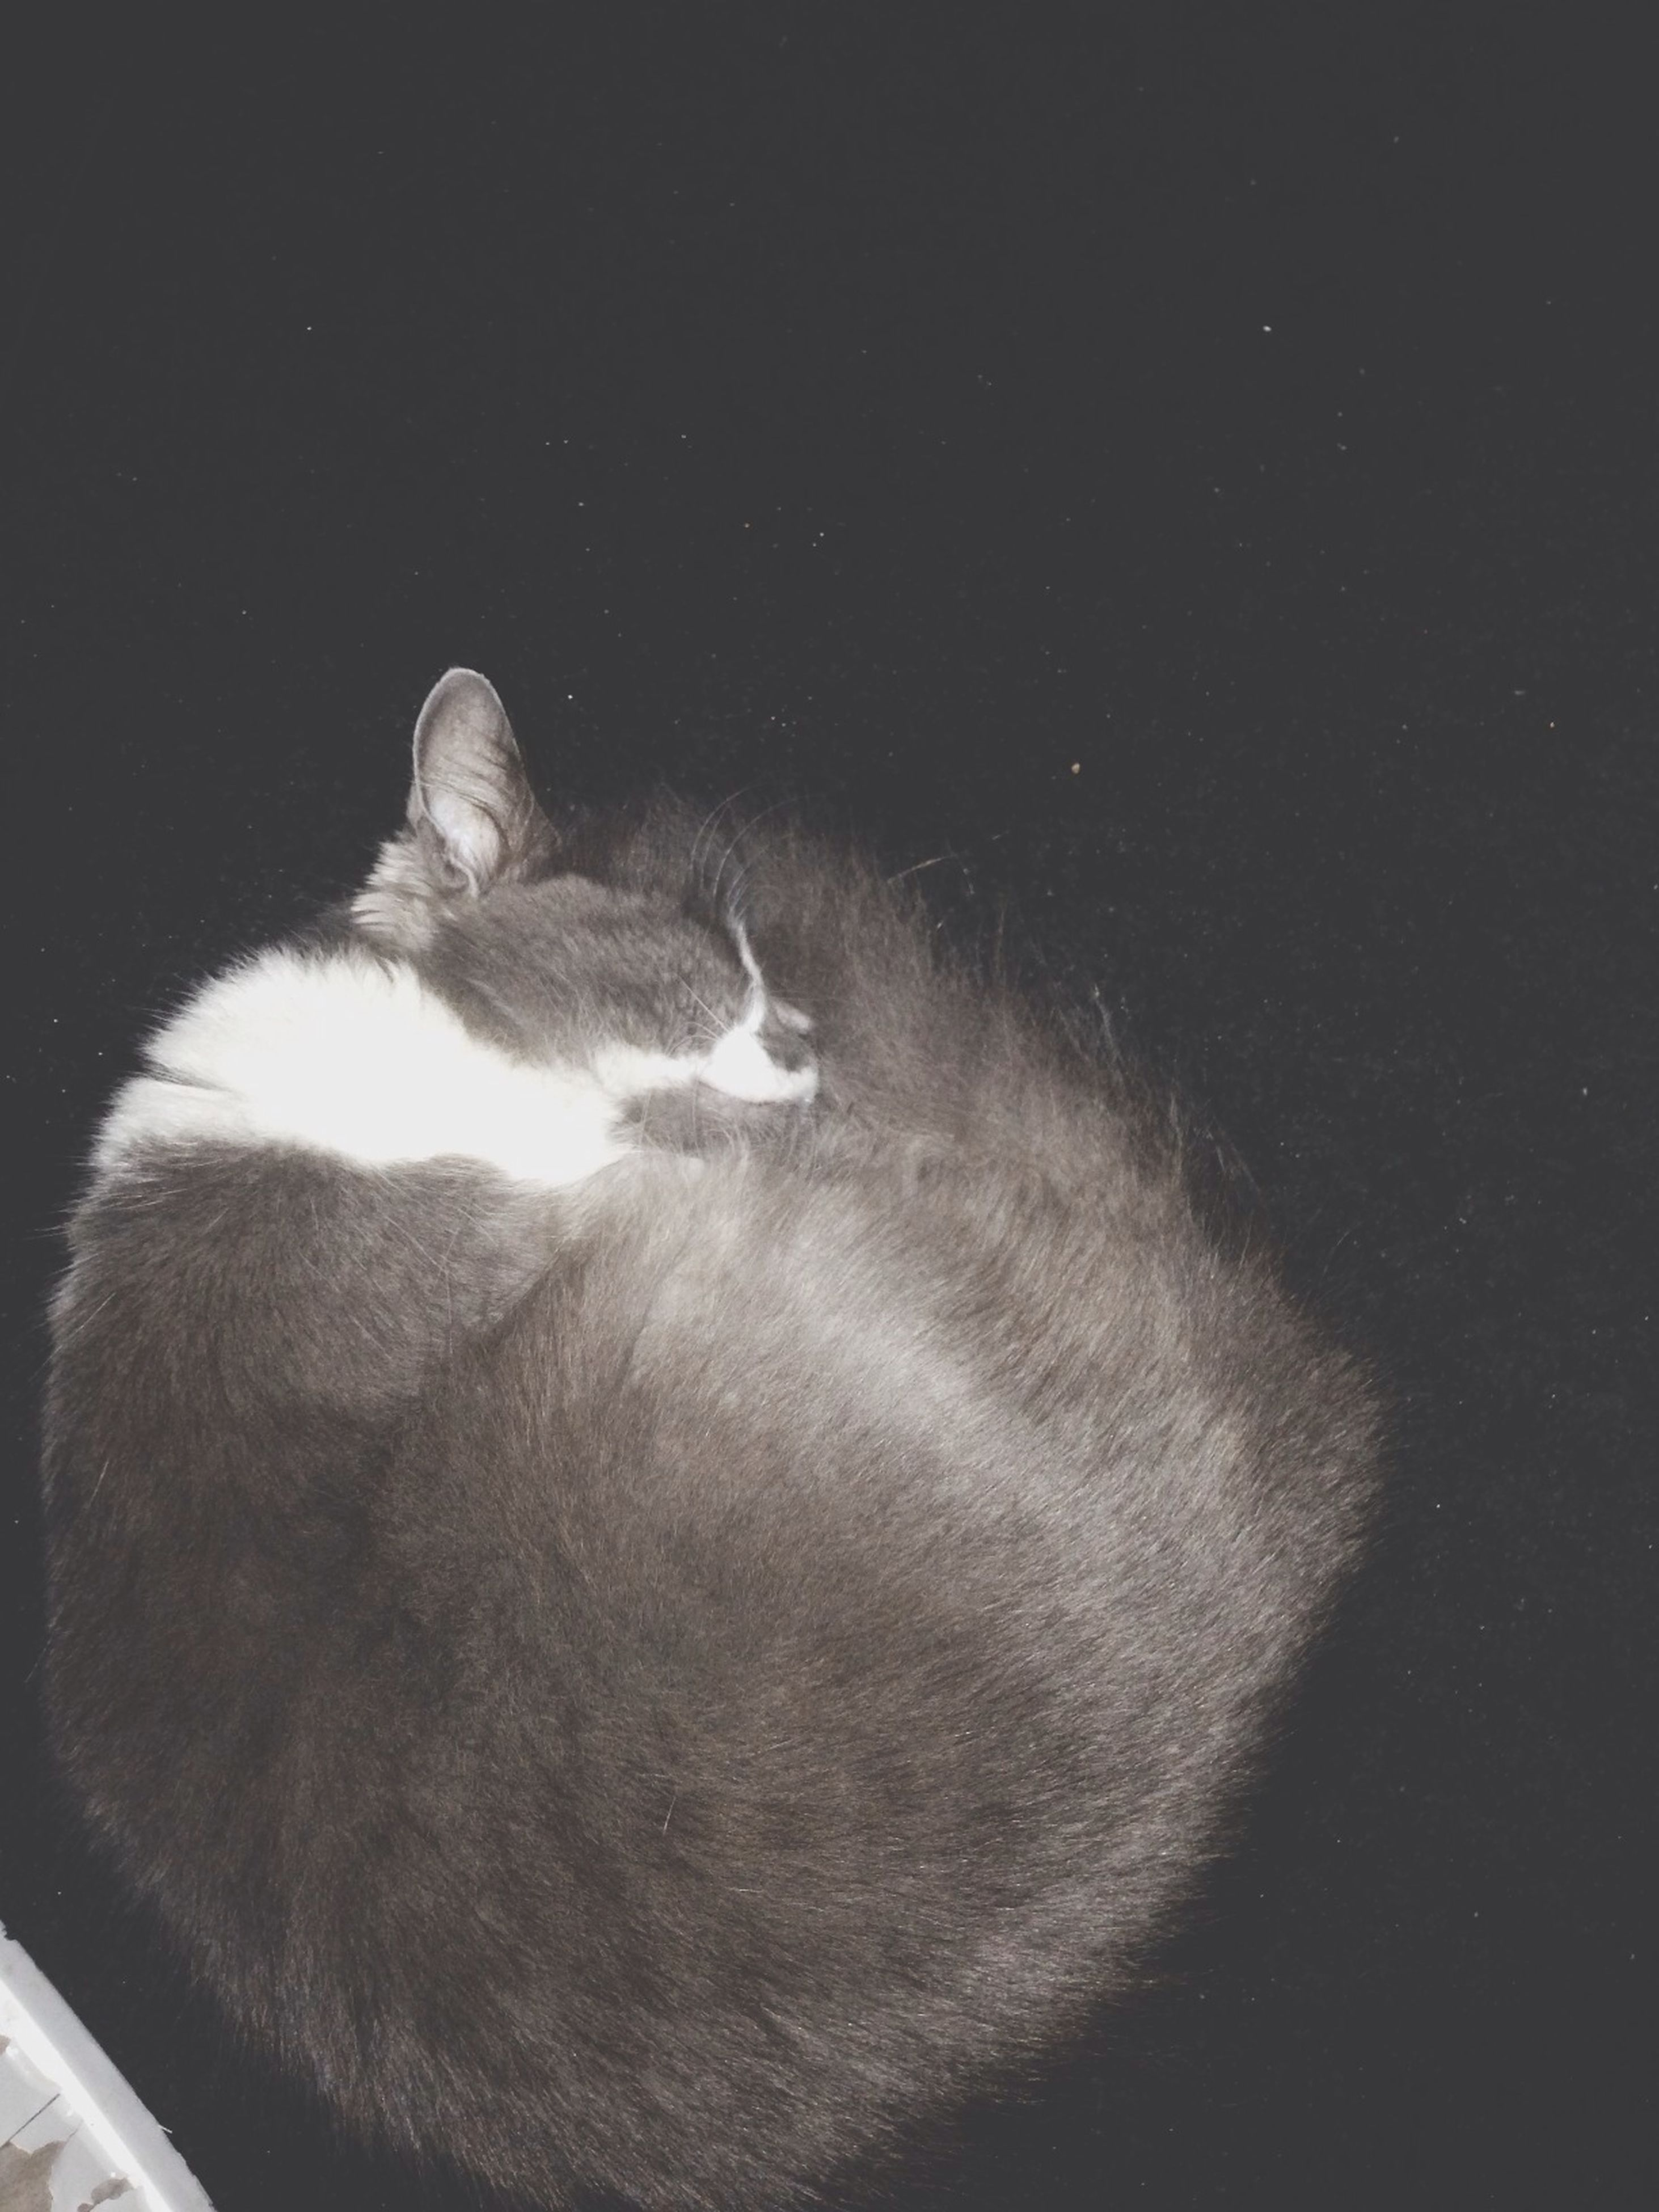 animal themes, one animal, mammal, domestic animals, wildlife, animals in the wild, pets, domestic cat, two animals, cat, relaxation, indoors, sleeping, zoology, young animal, feline, side view, no people, bird, vertebrate